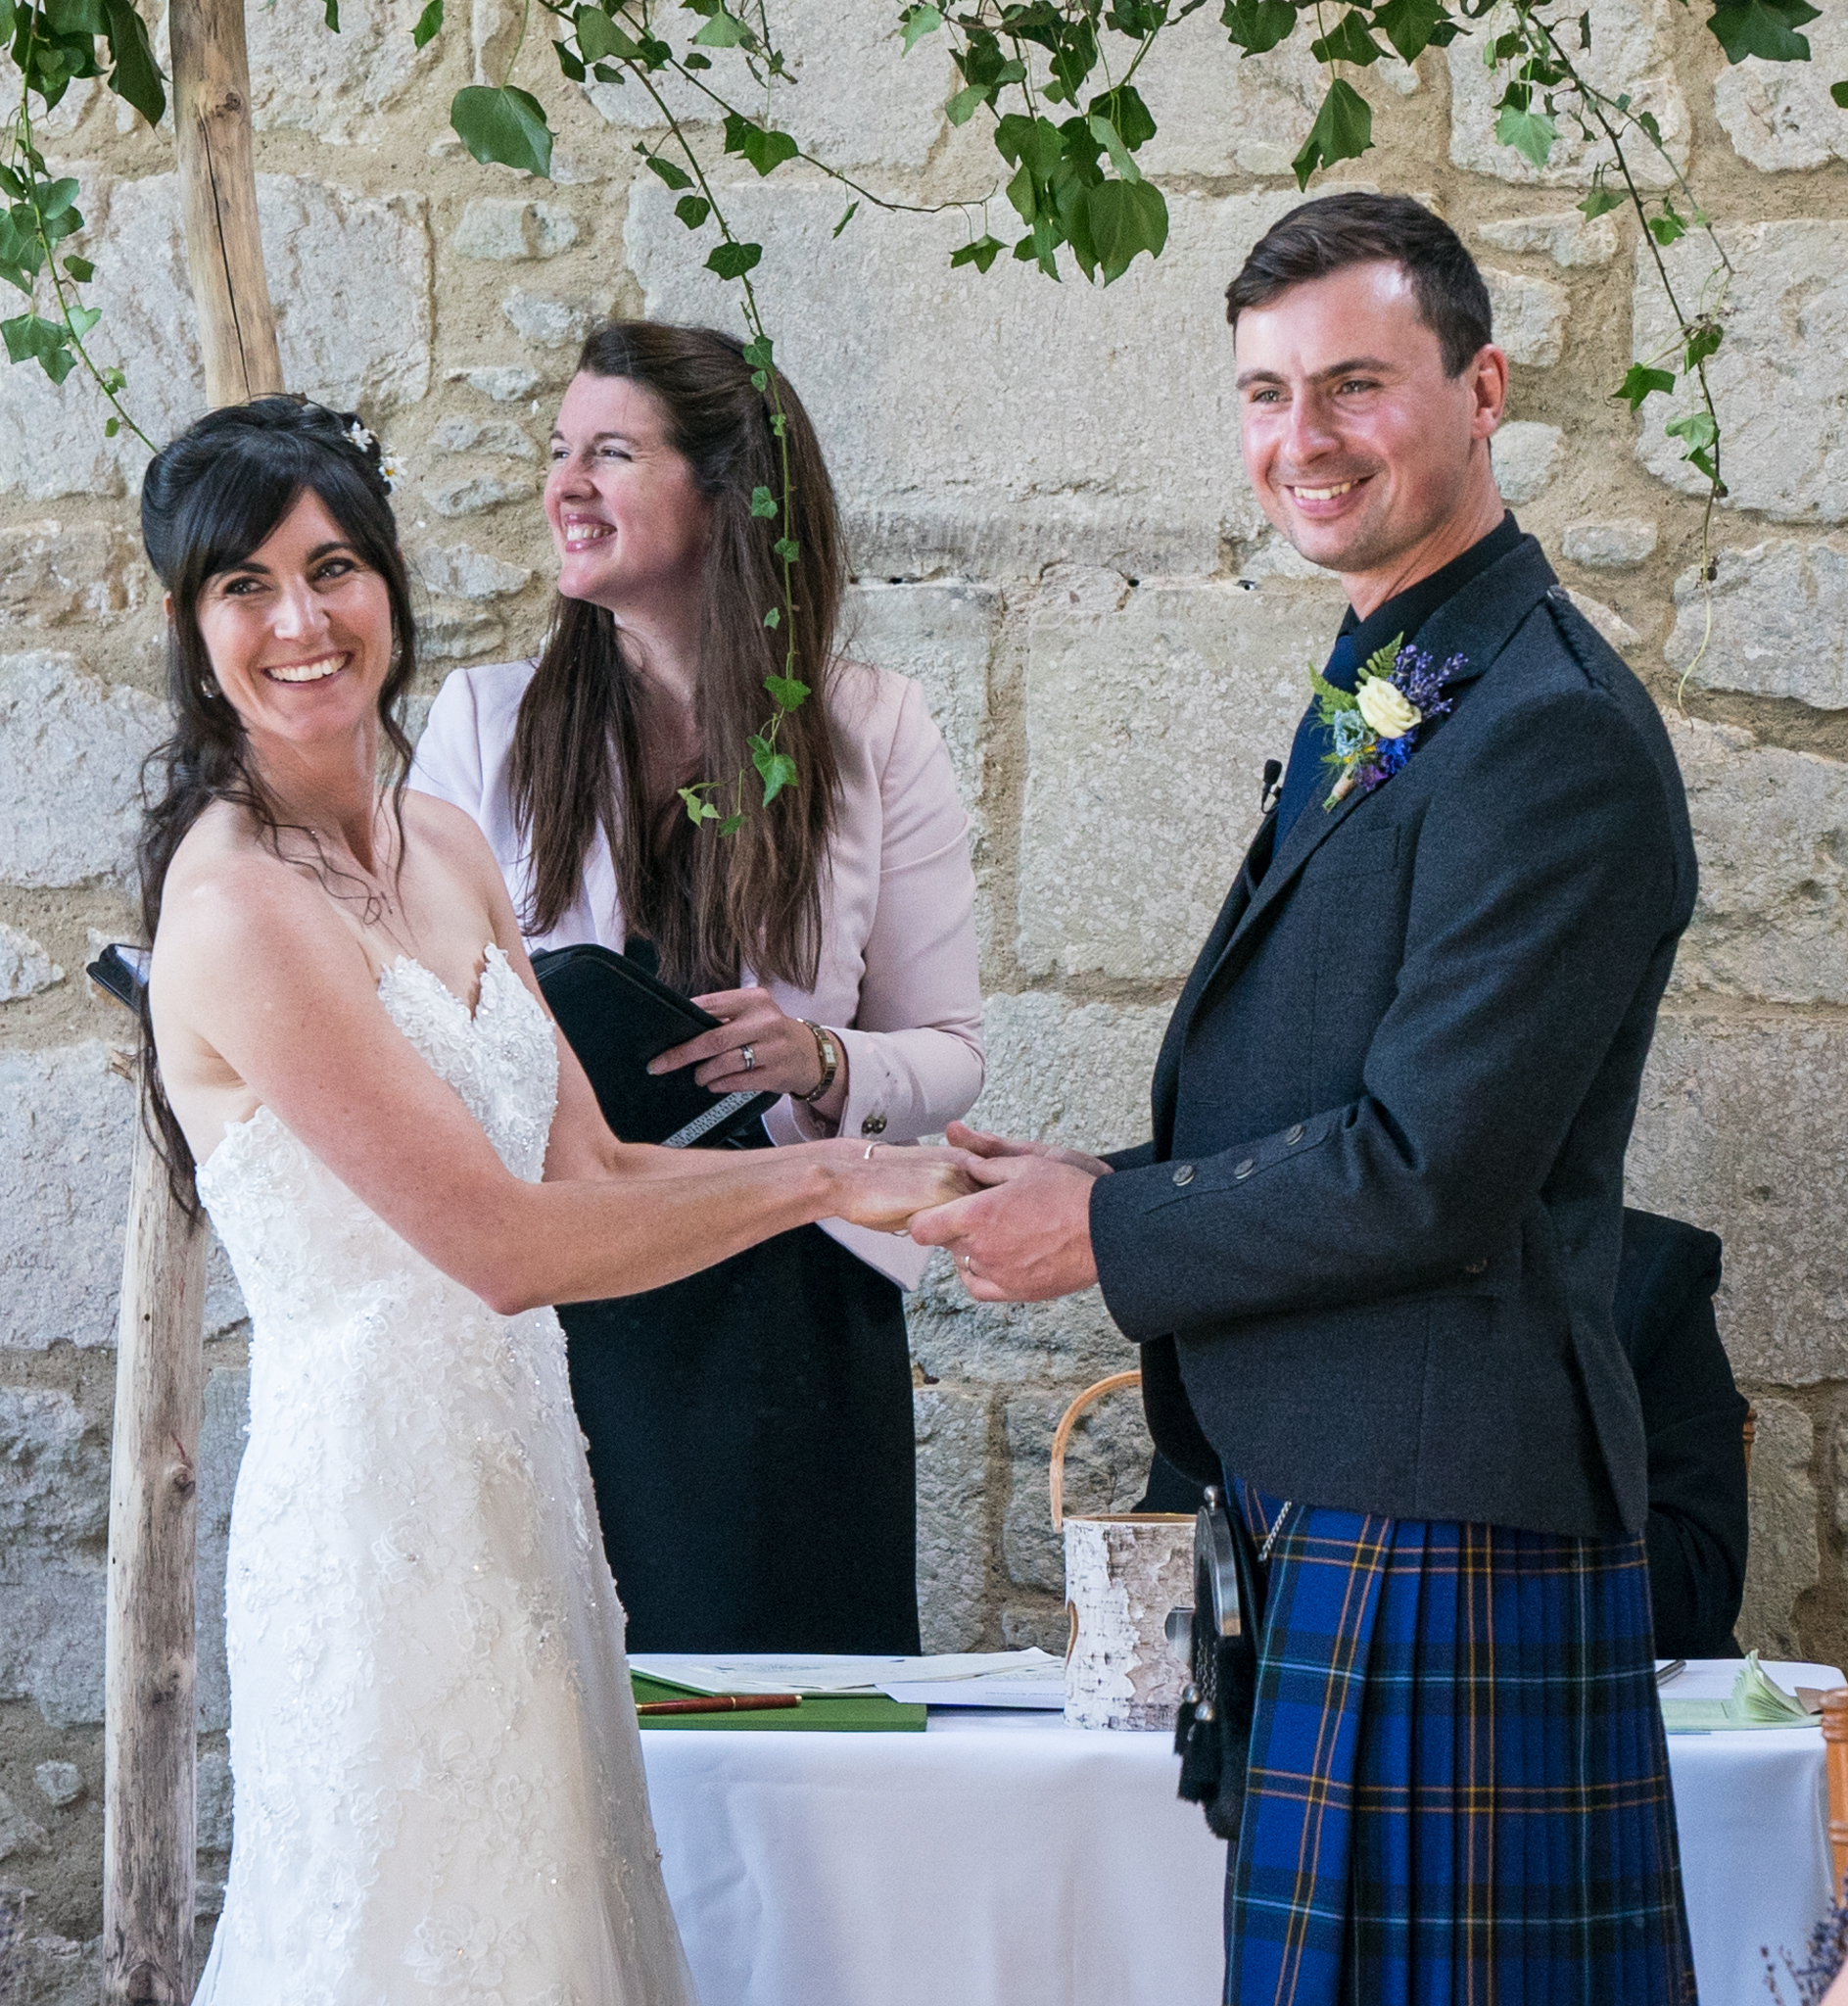 Nat & Pete-June 2017-Ceremony (50 of 60).jpg